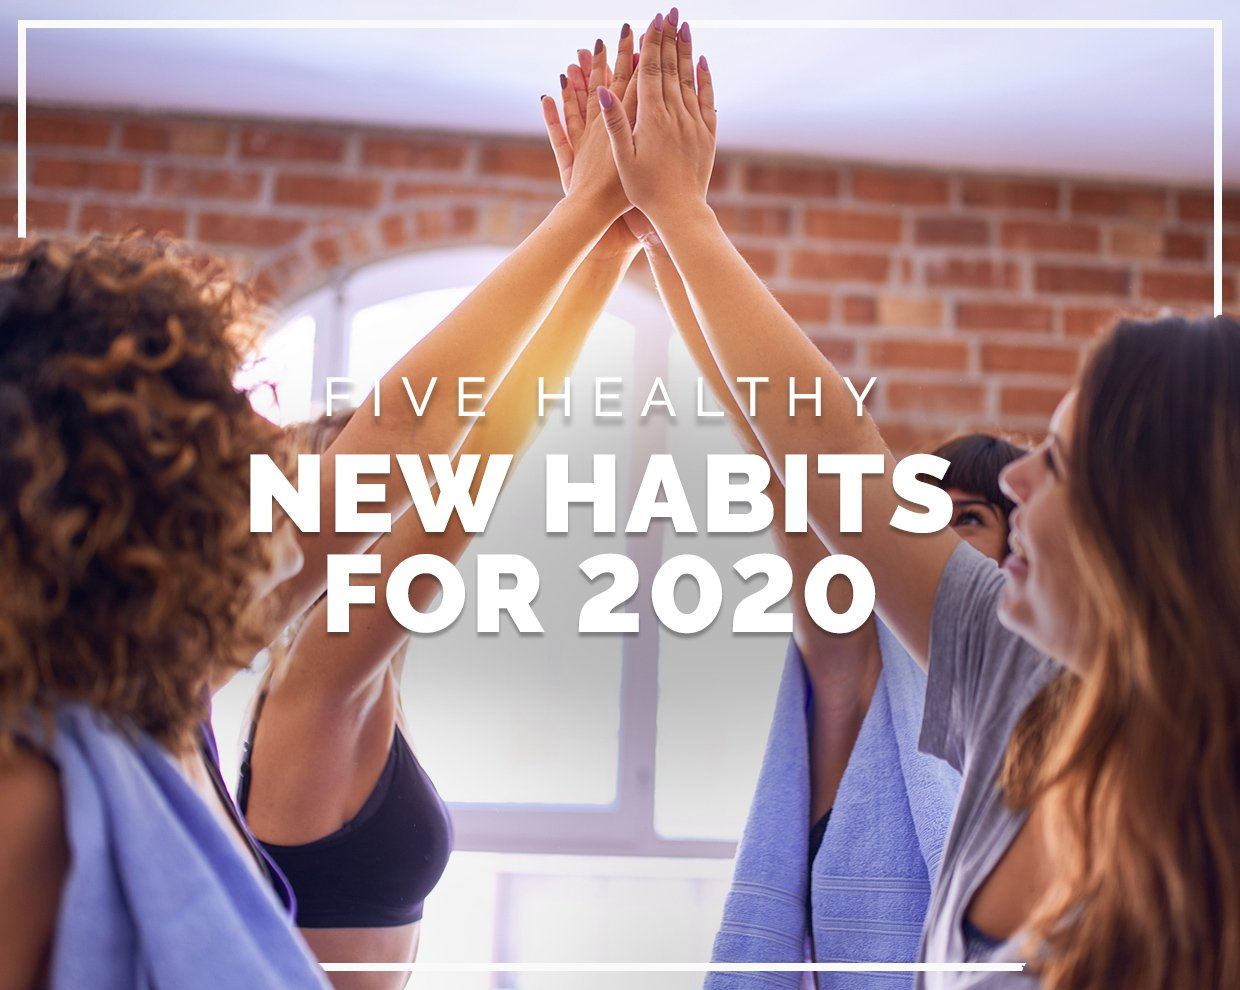 Five healthy new habits for 2020